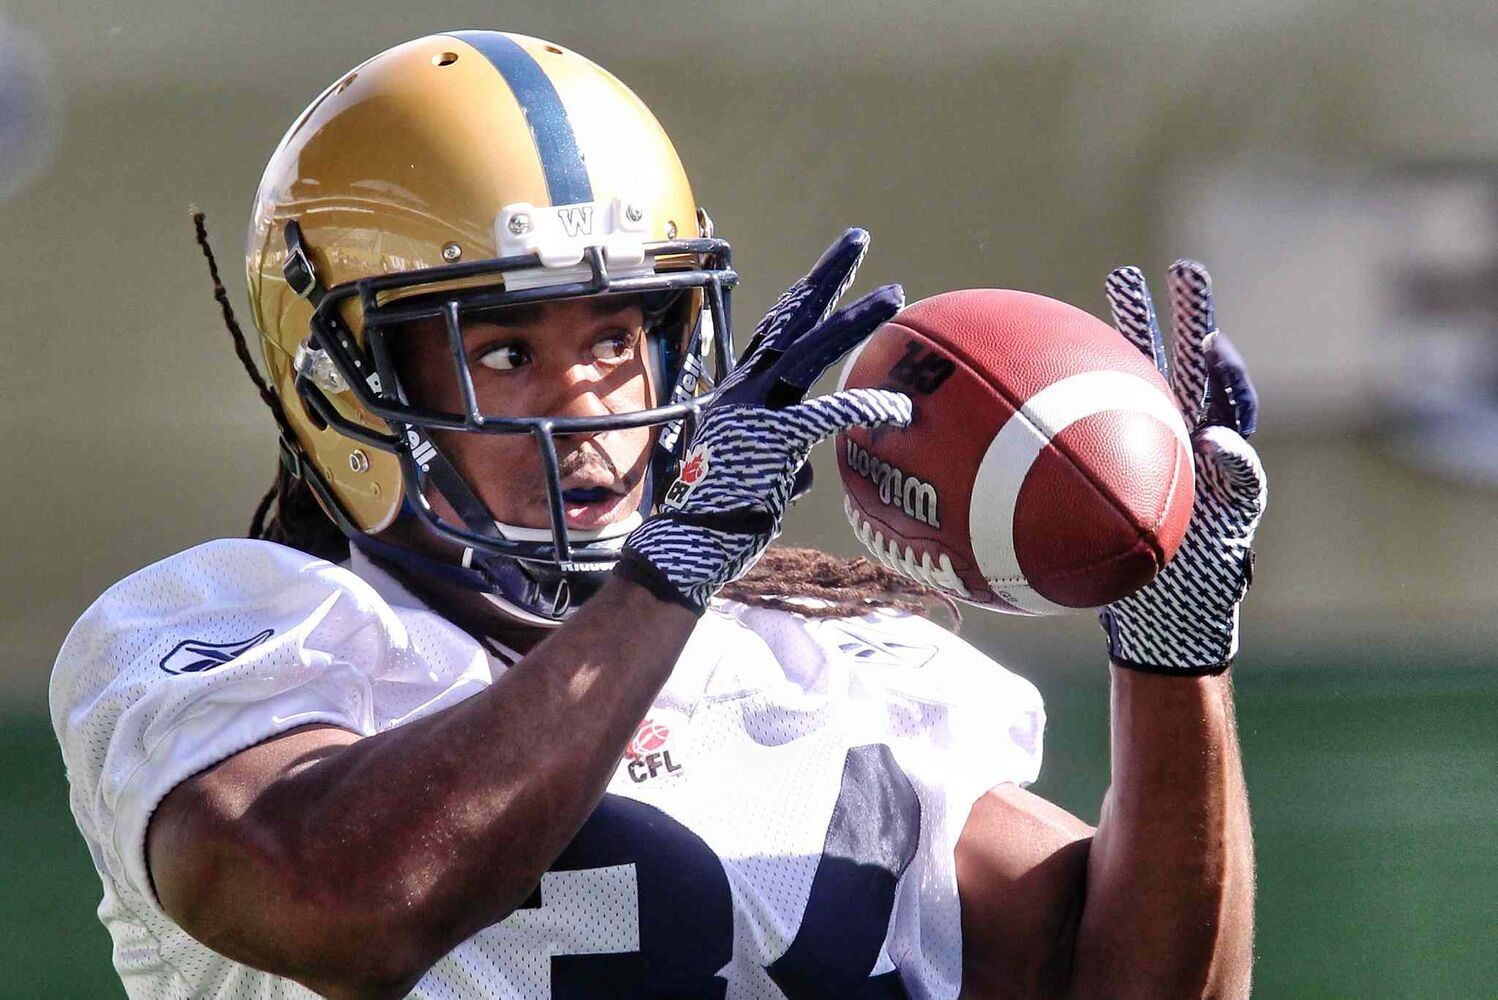 Paris Cotton catches the ball during the first official day of the Winnipeg Blue Bombers training camp at Investors Group Field Sunday morning.   (Mike Deal / Winnipeg Free Press)